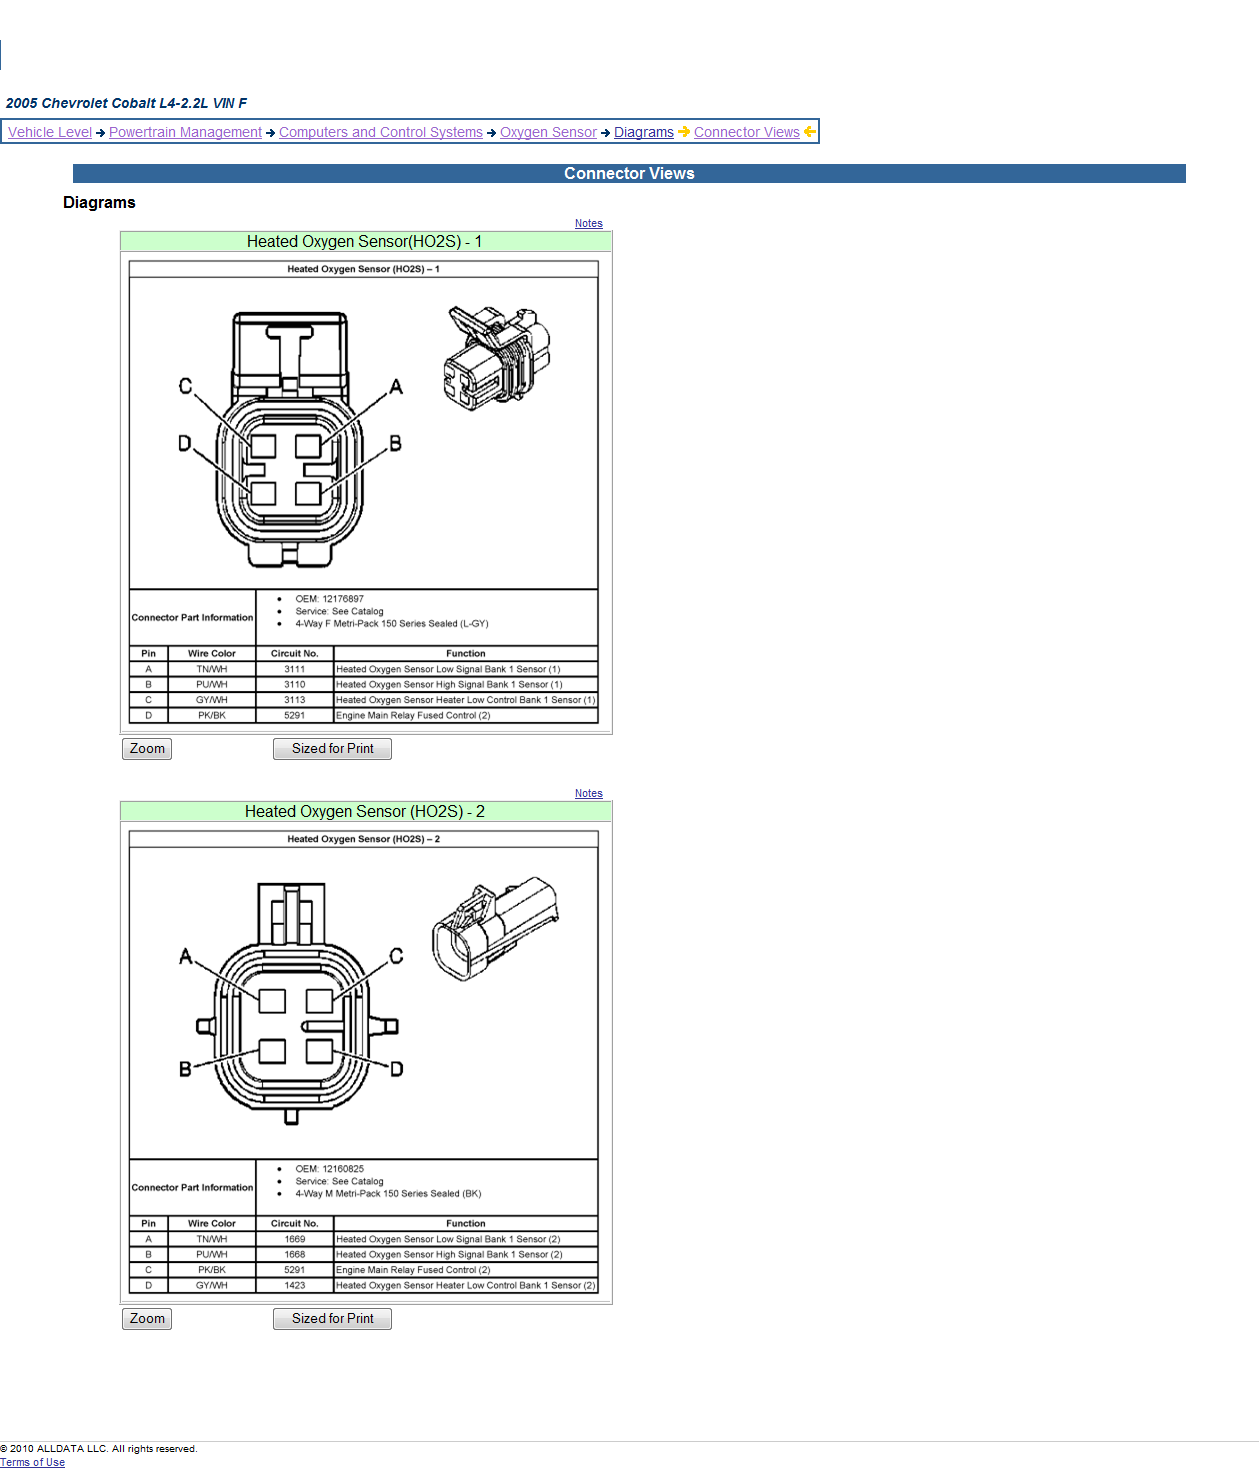 a4deda12a4f6d49137b2c3198e0ce0ff gm o2 sensor wiring diagram 2005 chevrolet cobalt oxygen sensor GM Radio Wiring Harness Diagram at crackthecode.co